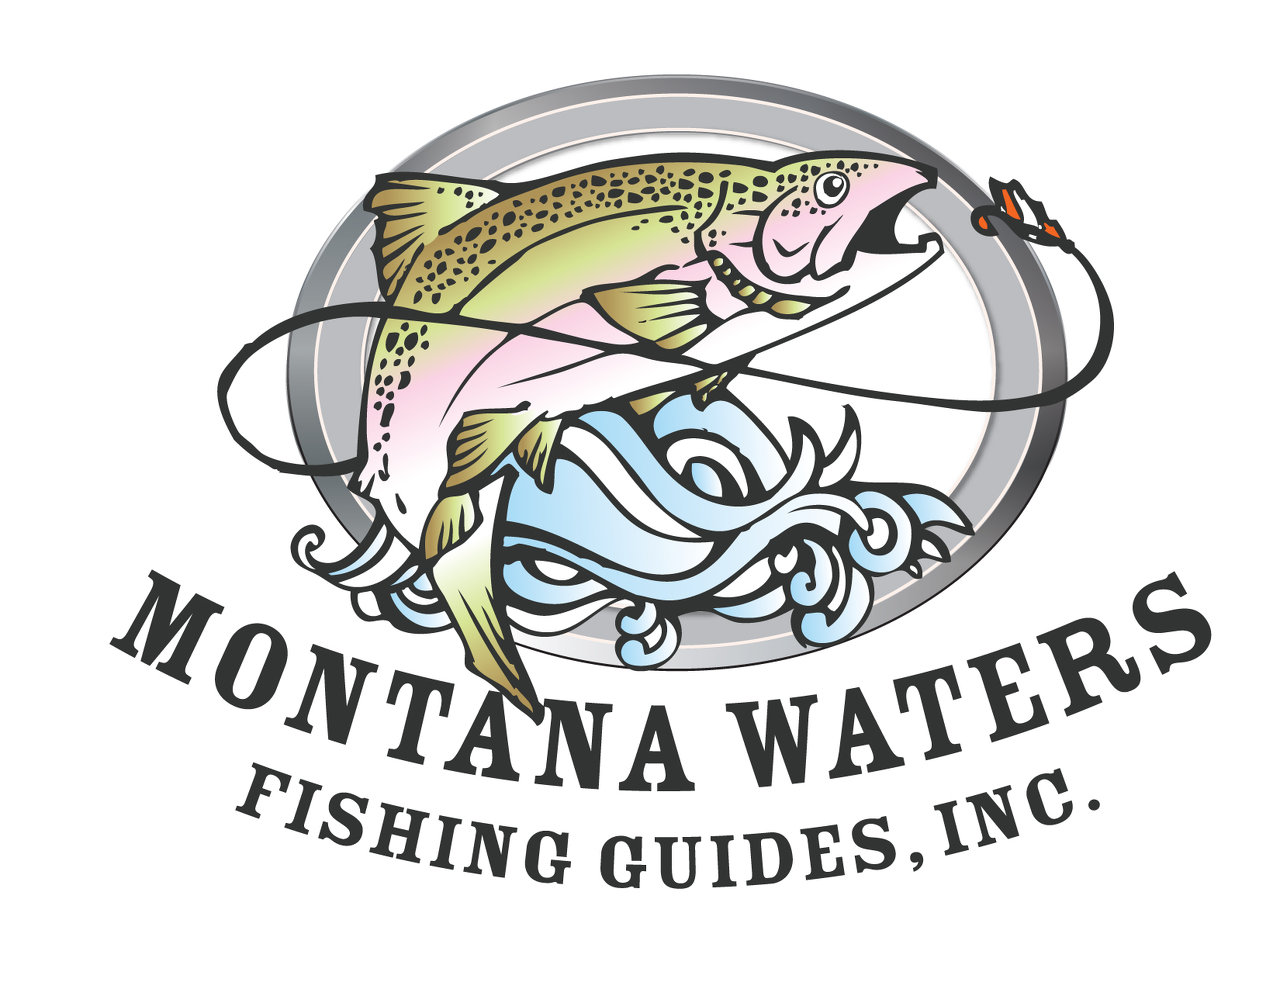 Montana Waters Fishing Guides